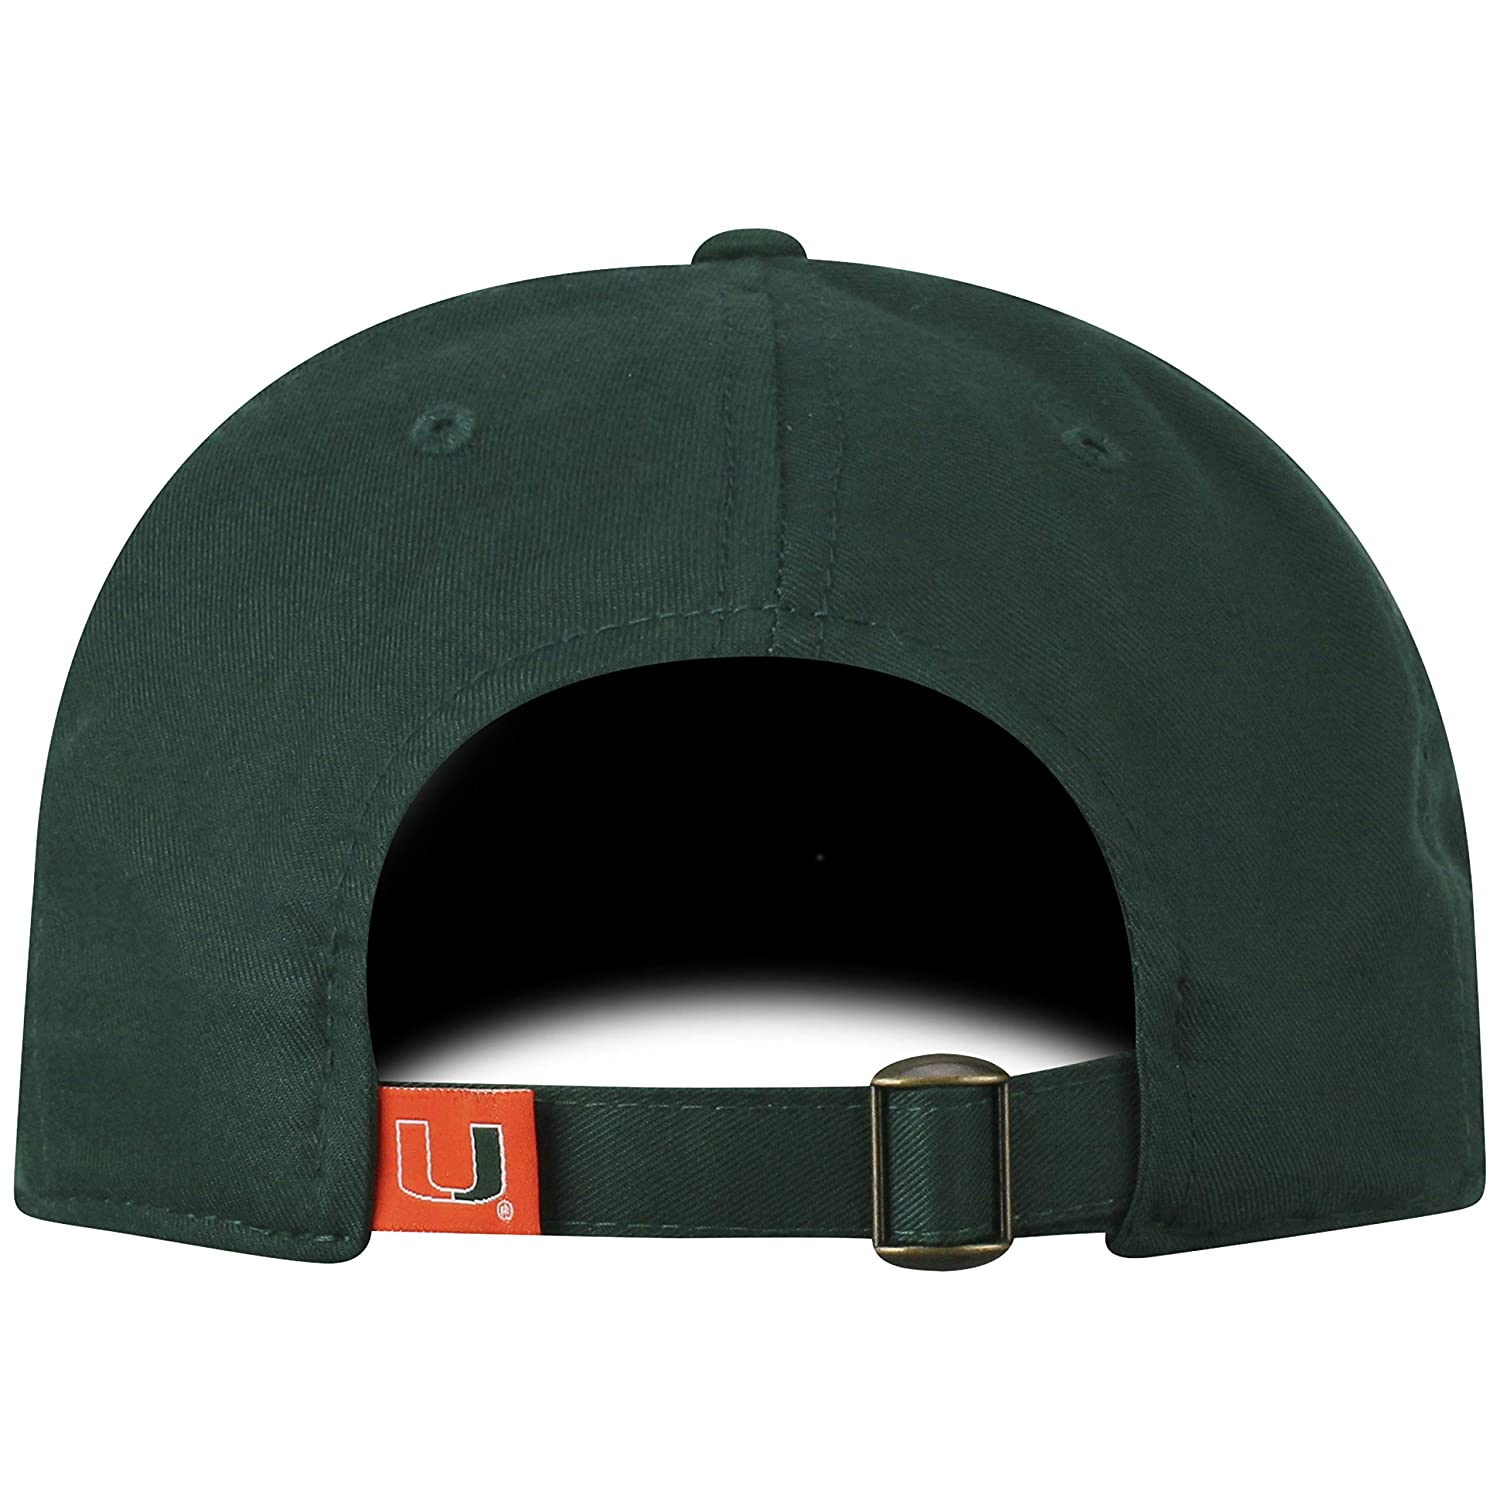 1925 Staple 4 Hat Cap 745459 Top of the World Miami Hurricanes Official NCAA Adjustable Green EST